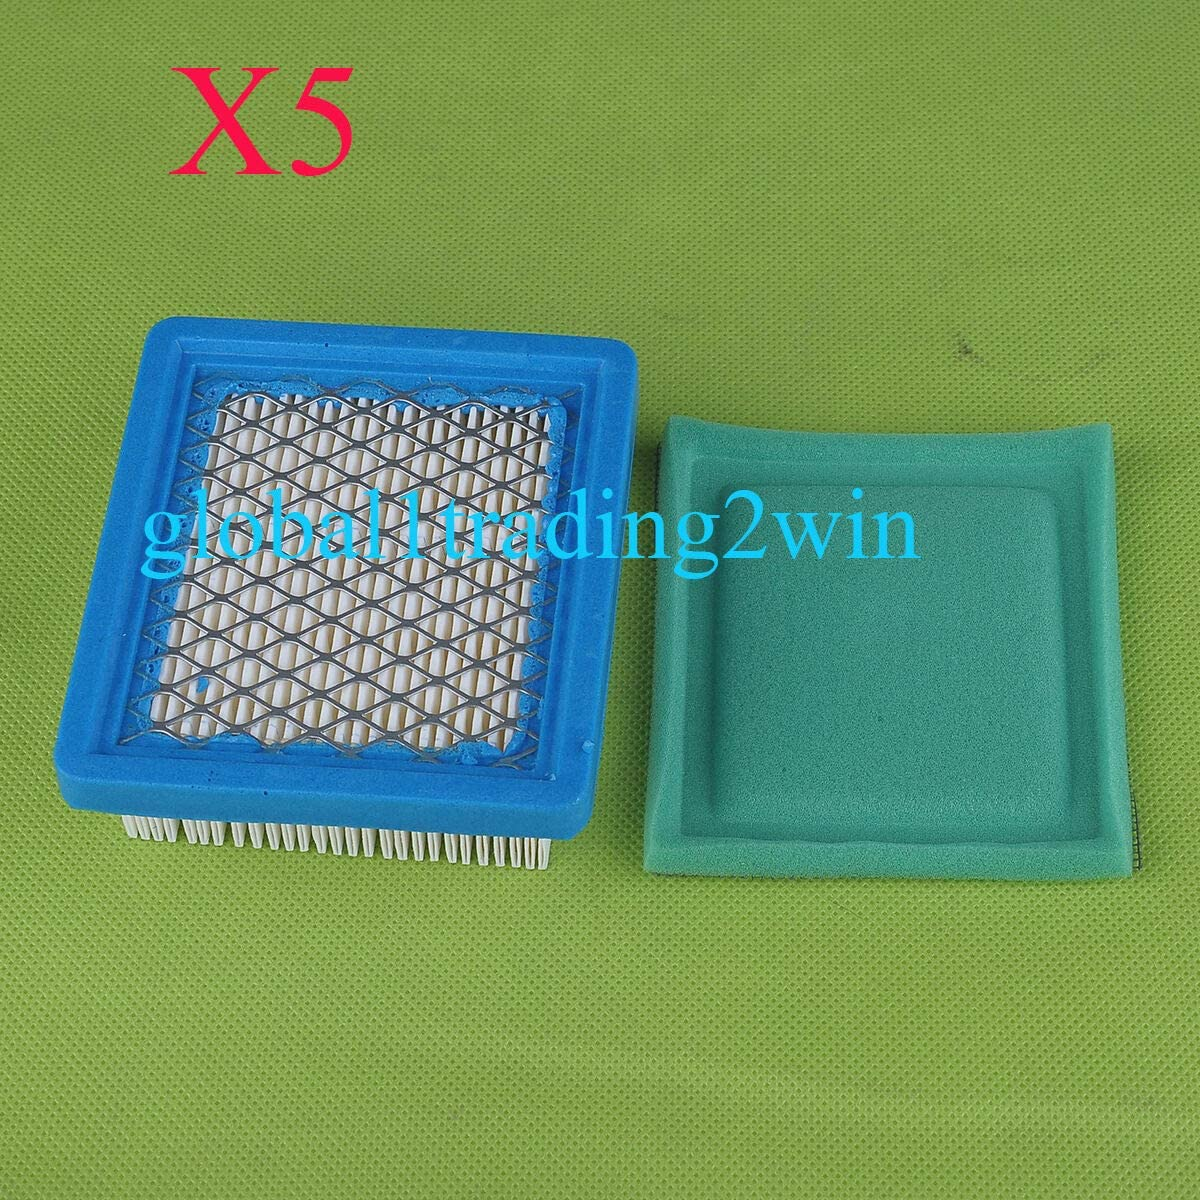 Replacement Parts 5x Pre Air Filter for 36046 Oklahoma City Mall Free Shipping Cheap Bargain Gift Tecumseh C 740061